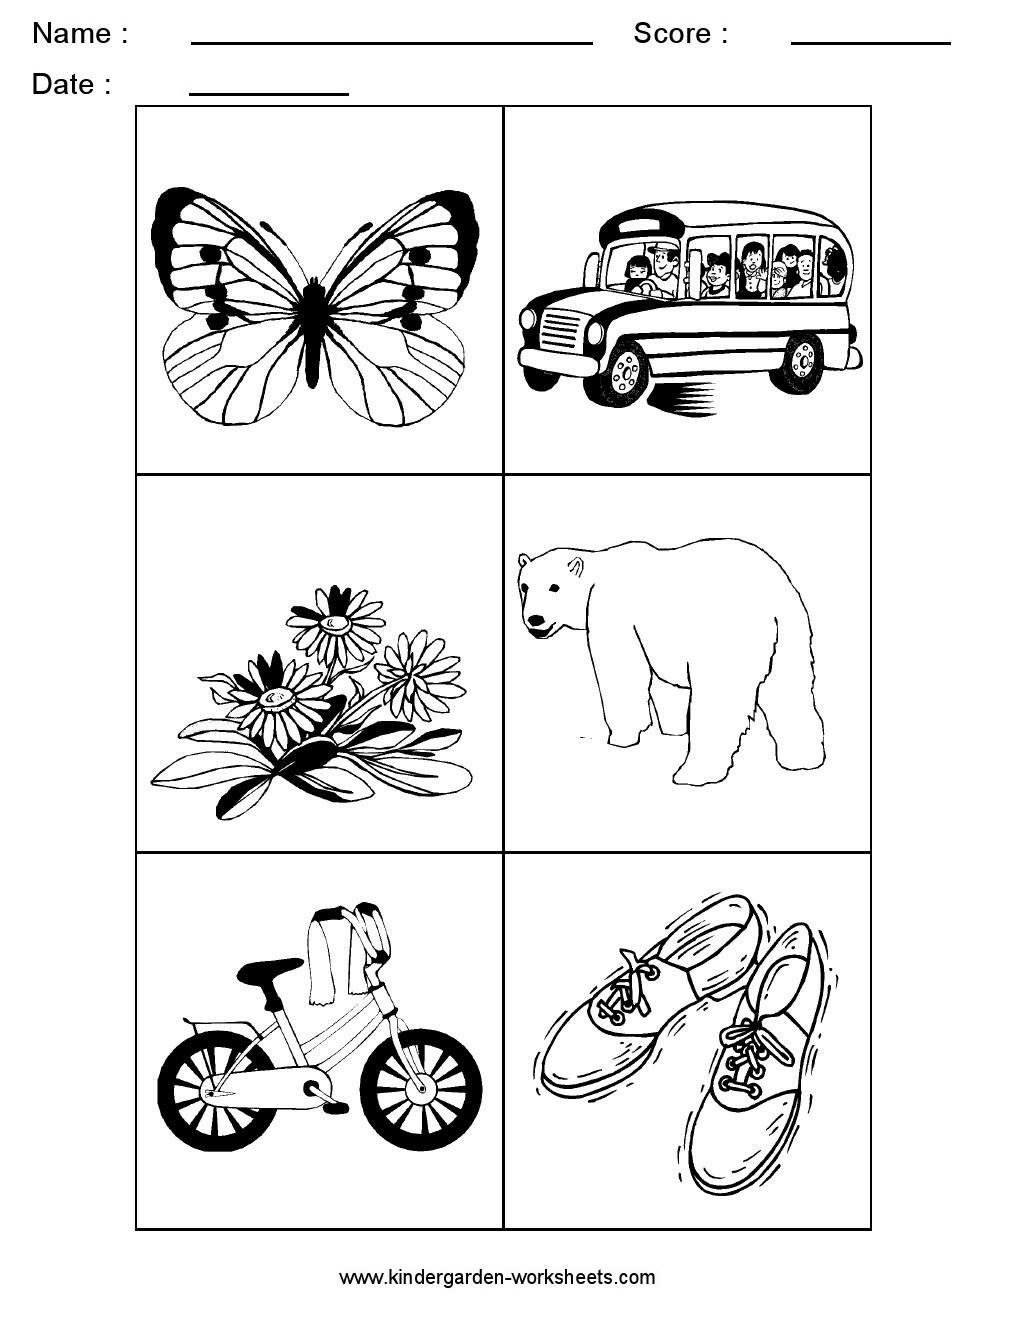 Worksheets Letter B Worksheets Kindergarten kindergarten worksheets alphabet picture cards sorting letter b